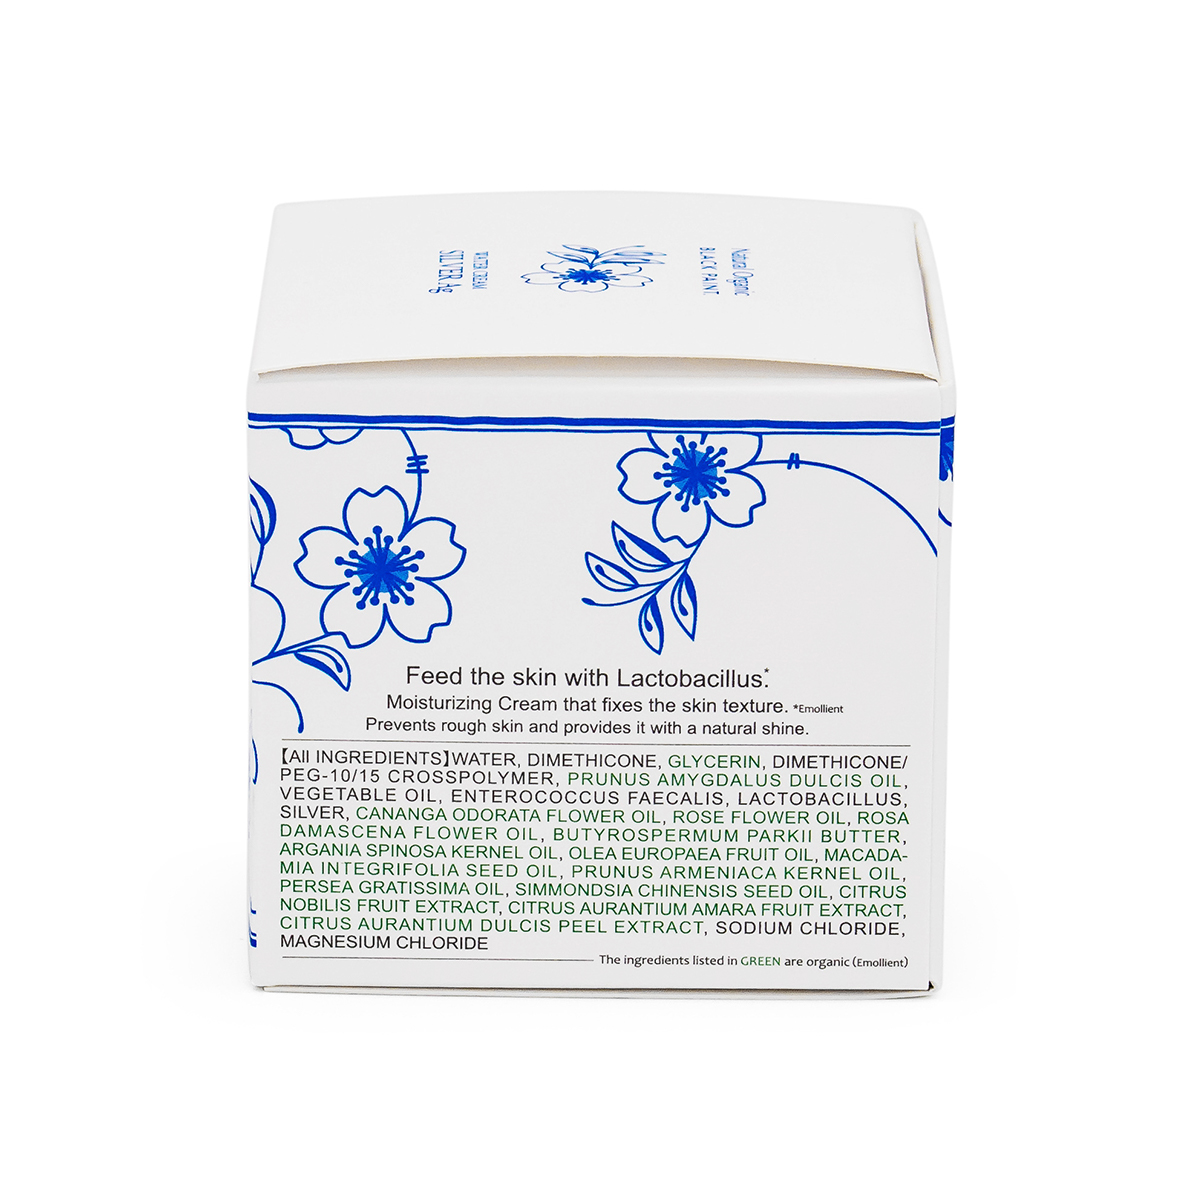 Water Cream Silver 25g with Human Microbiome - box side 1